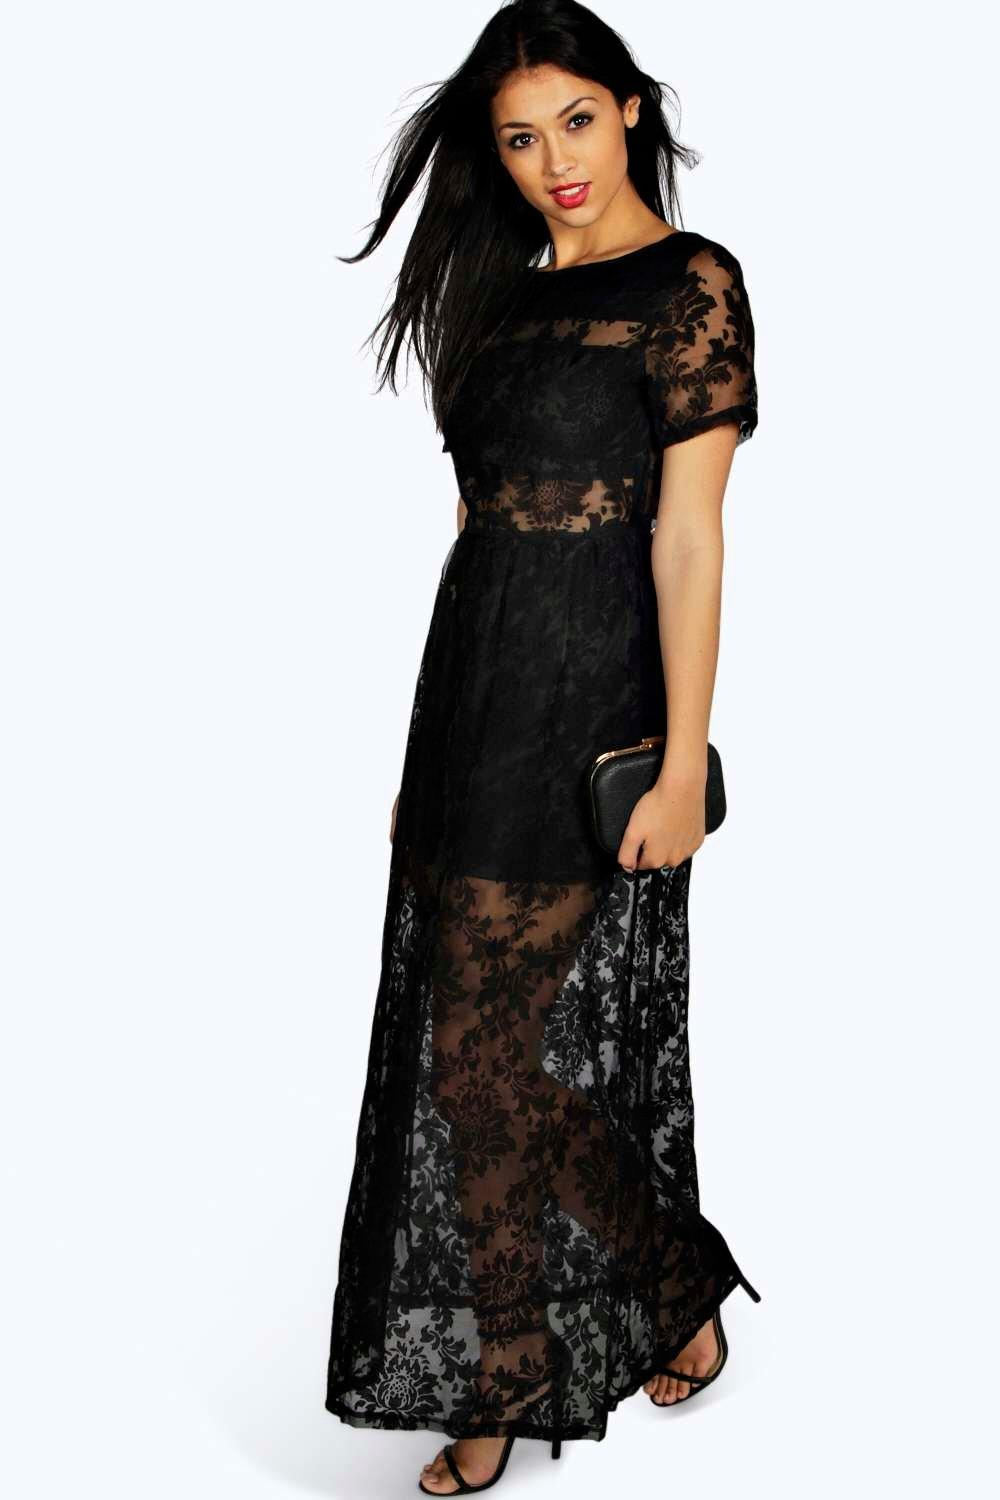 Black maxi dresses for women lace